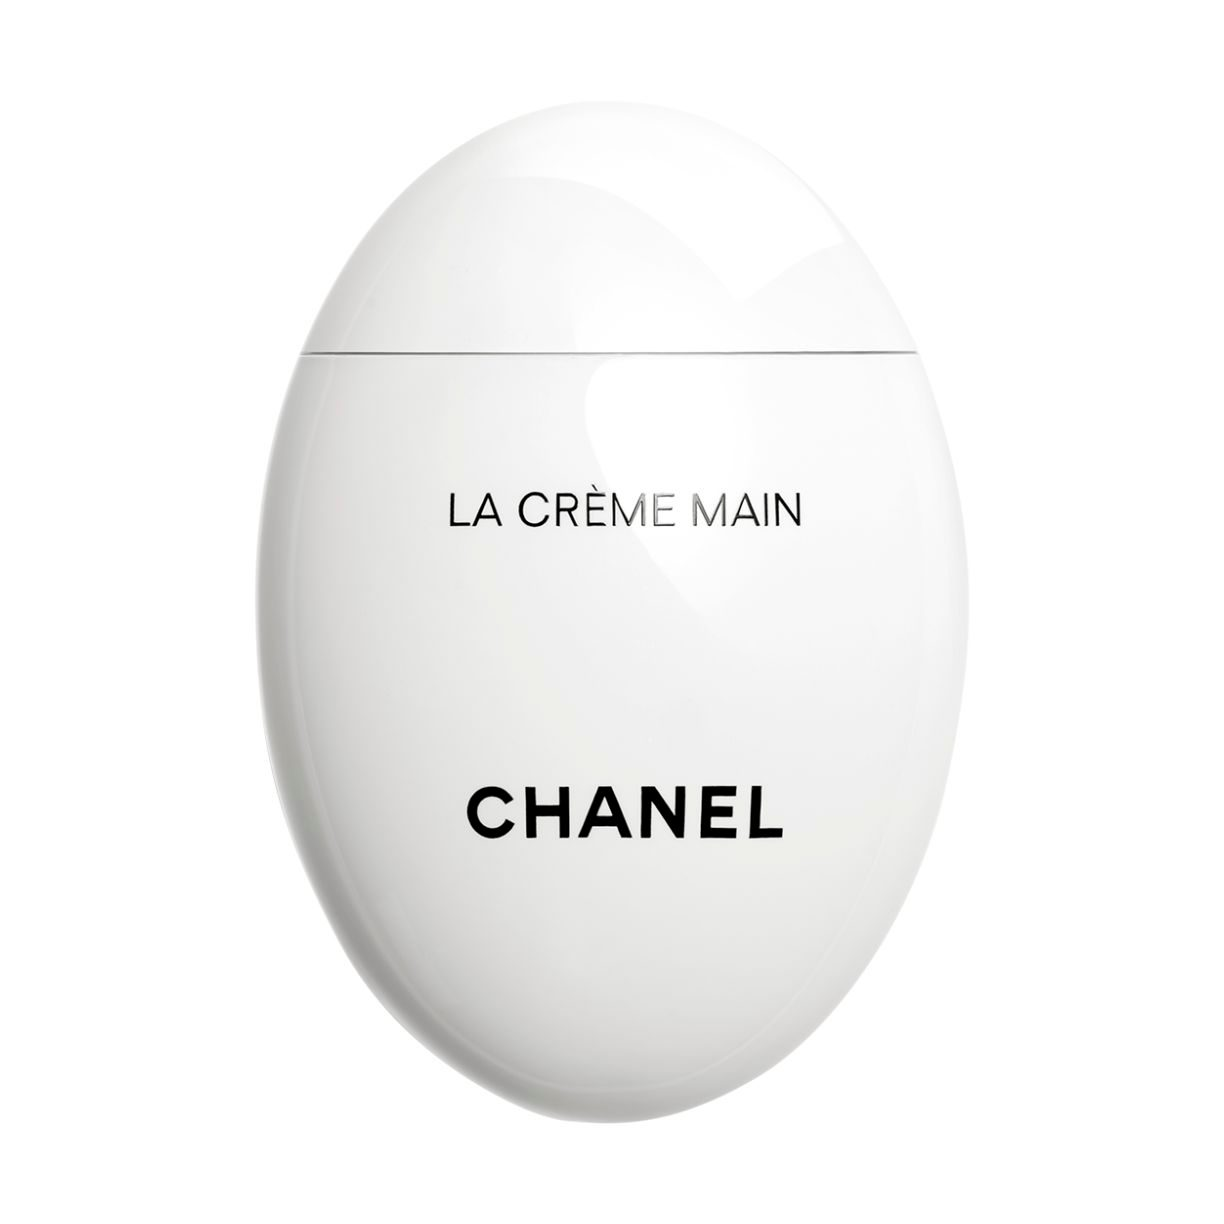 LA CRÈME MAIN SMOOTH-SOFTEN-BRIGHTEN BOTTLE 50ML